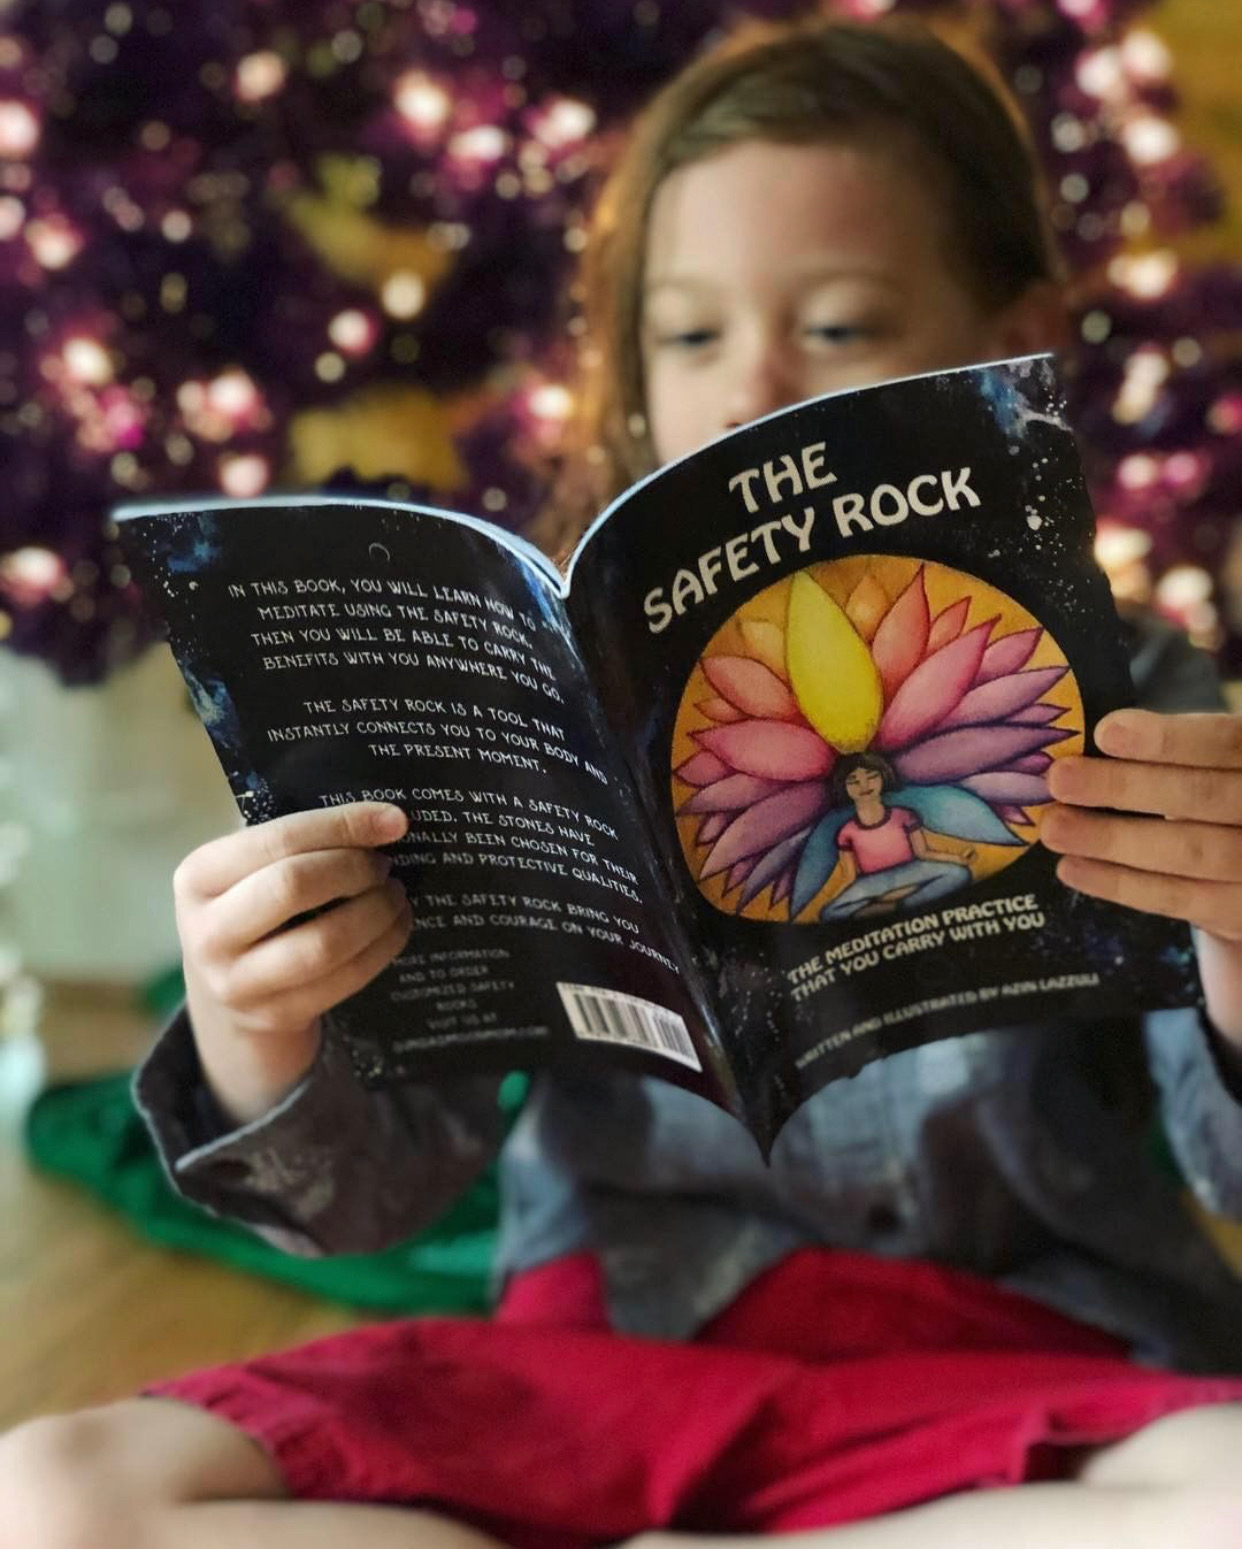 The Safety Rock teaches children about meditation